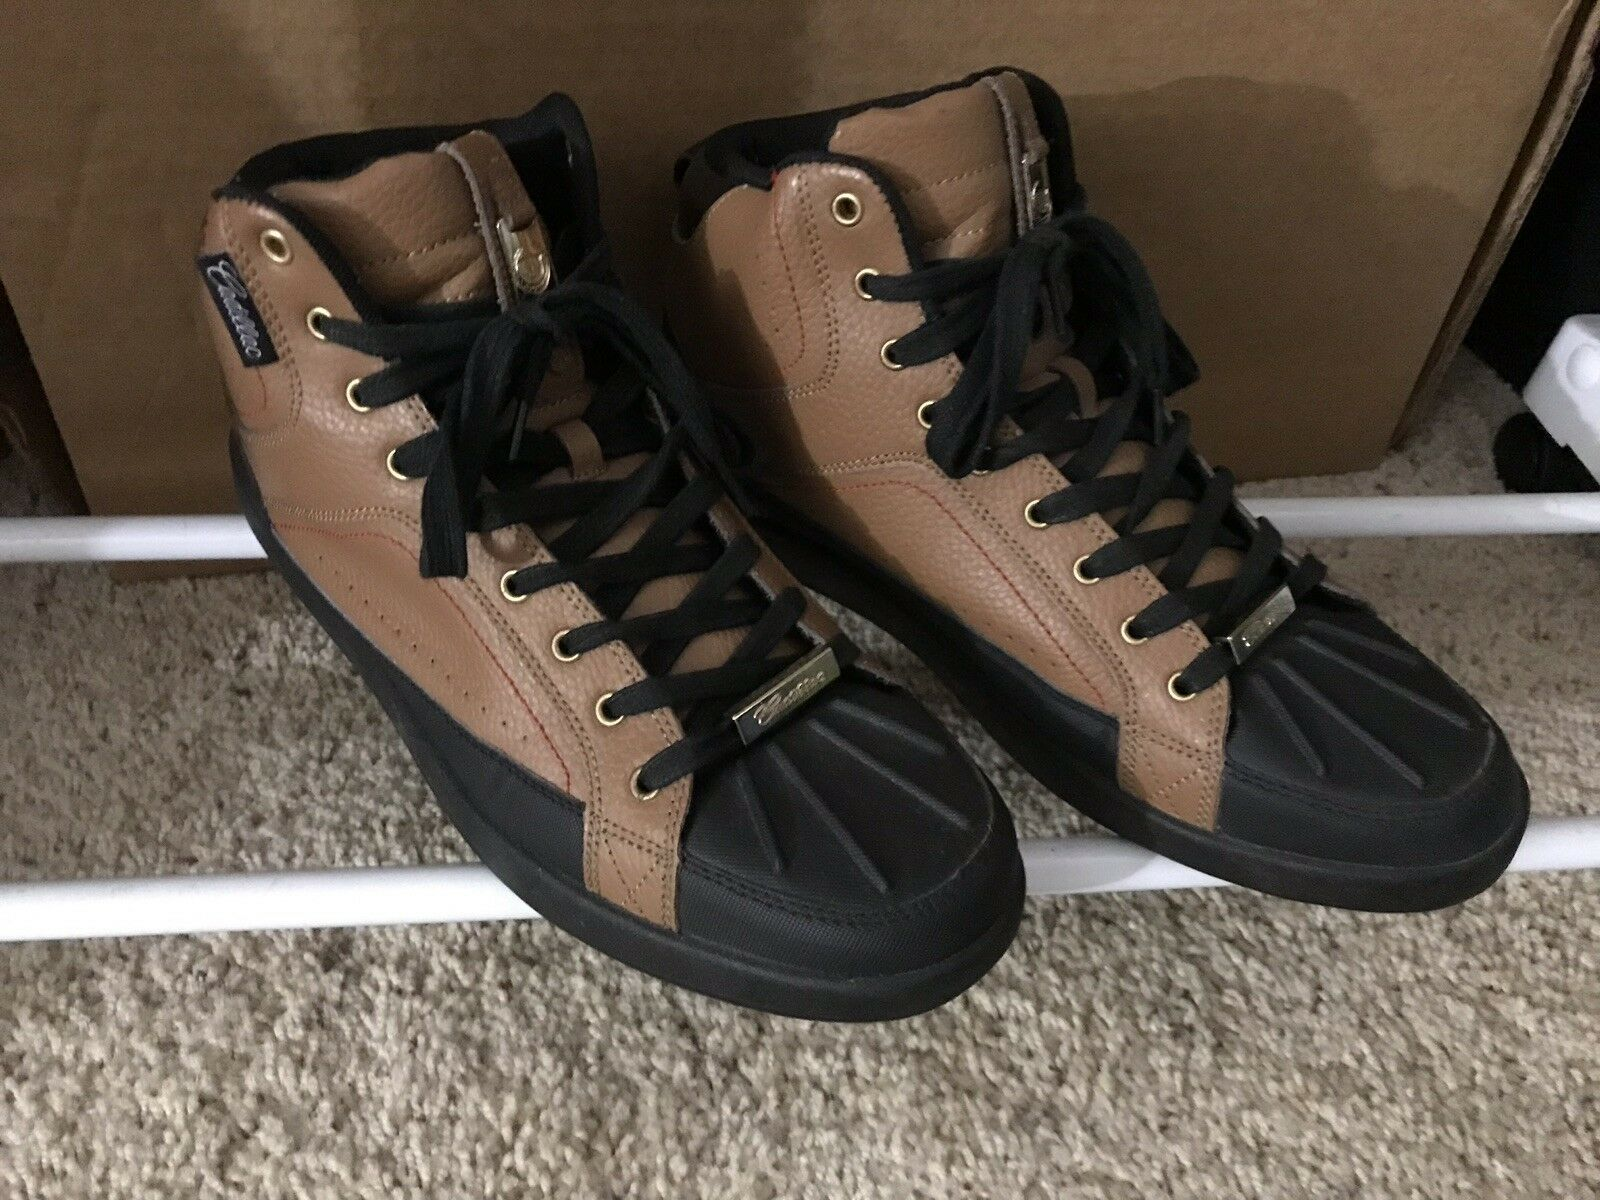 Cadillac hi-top driving shoes, used 2 Or 3 Times Size 13. Unique shoes